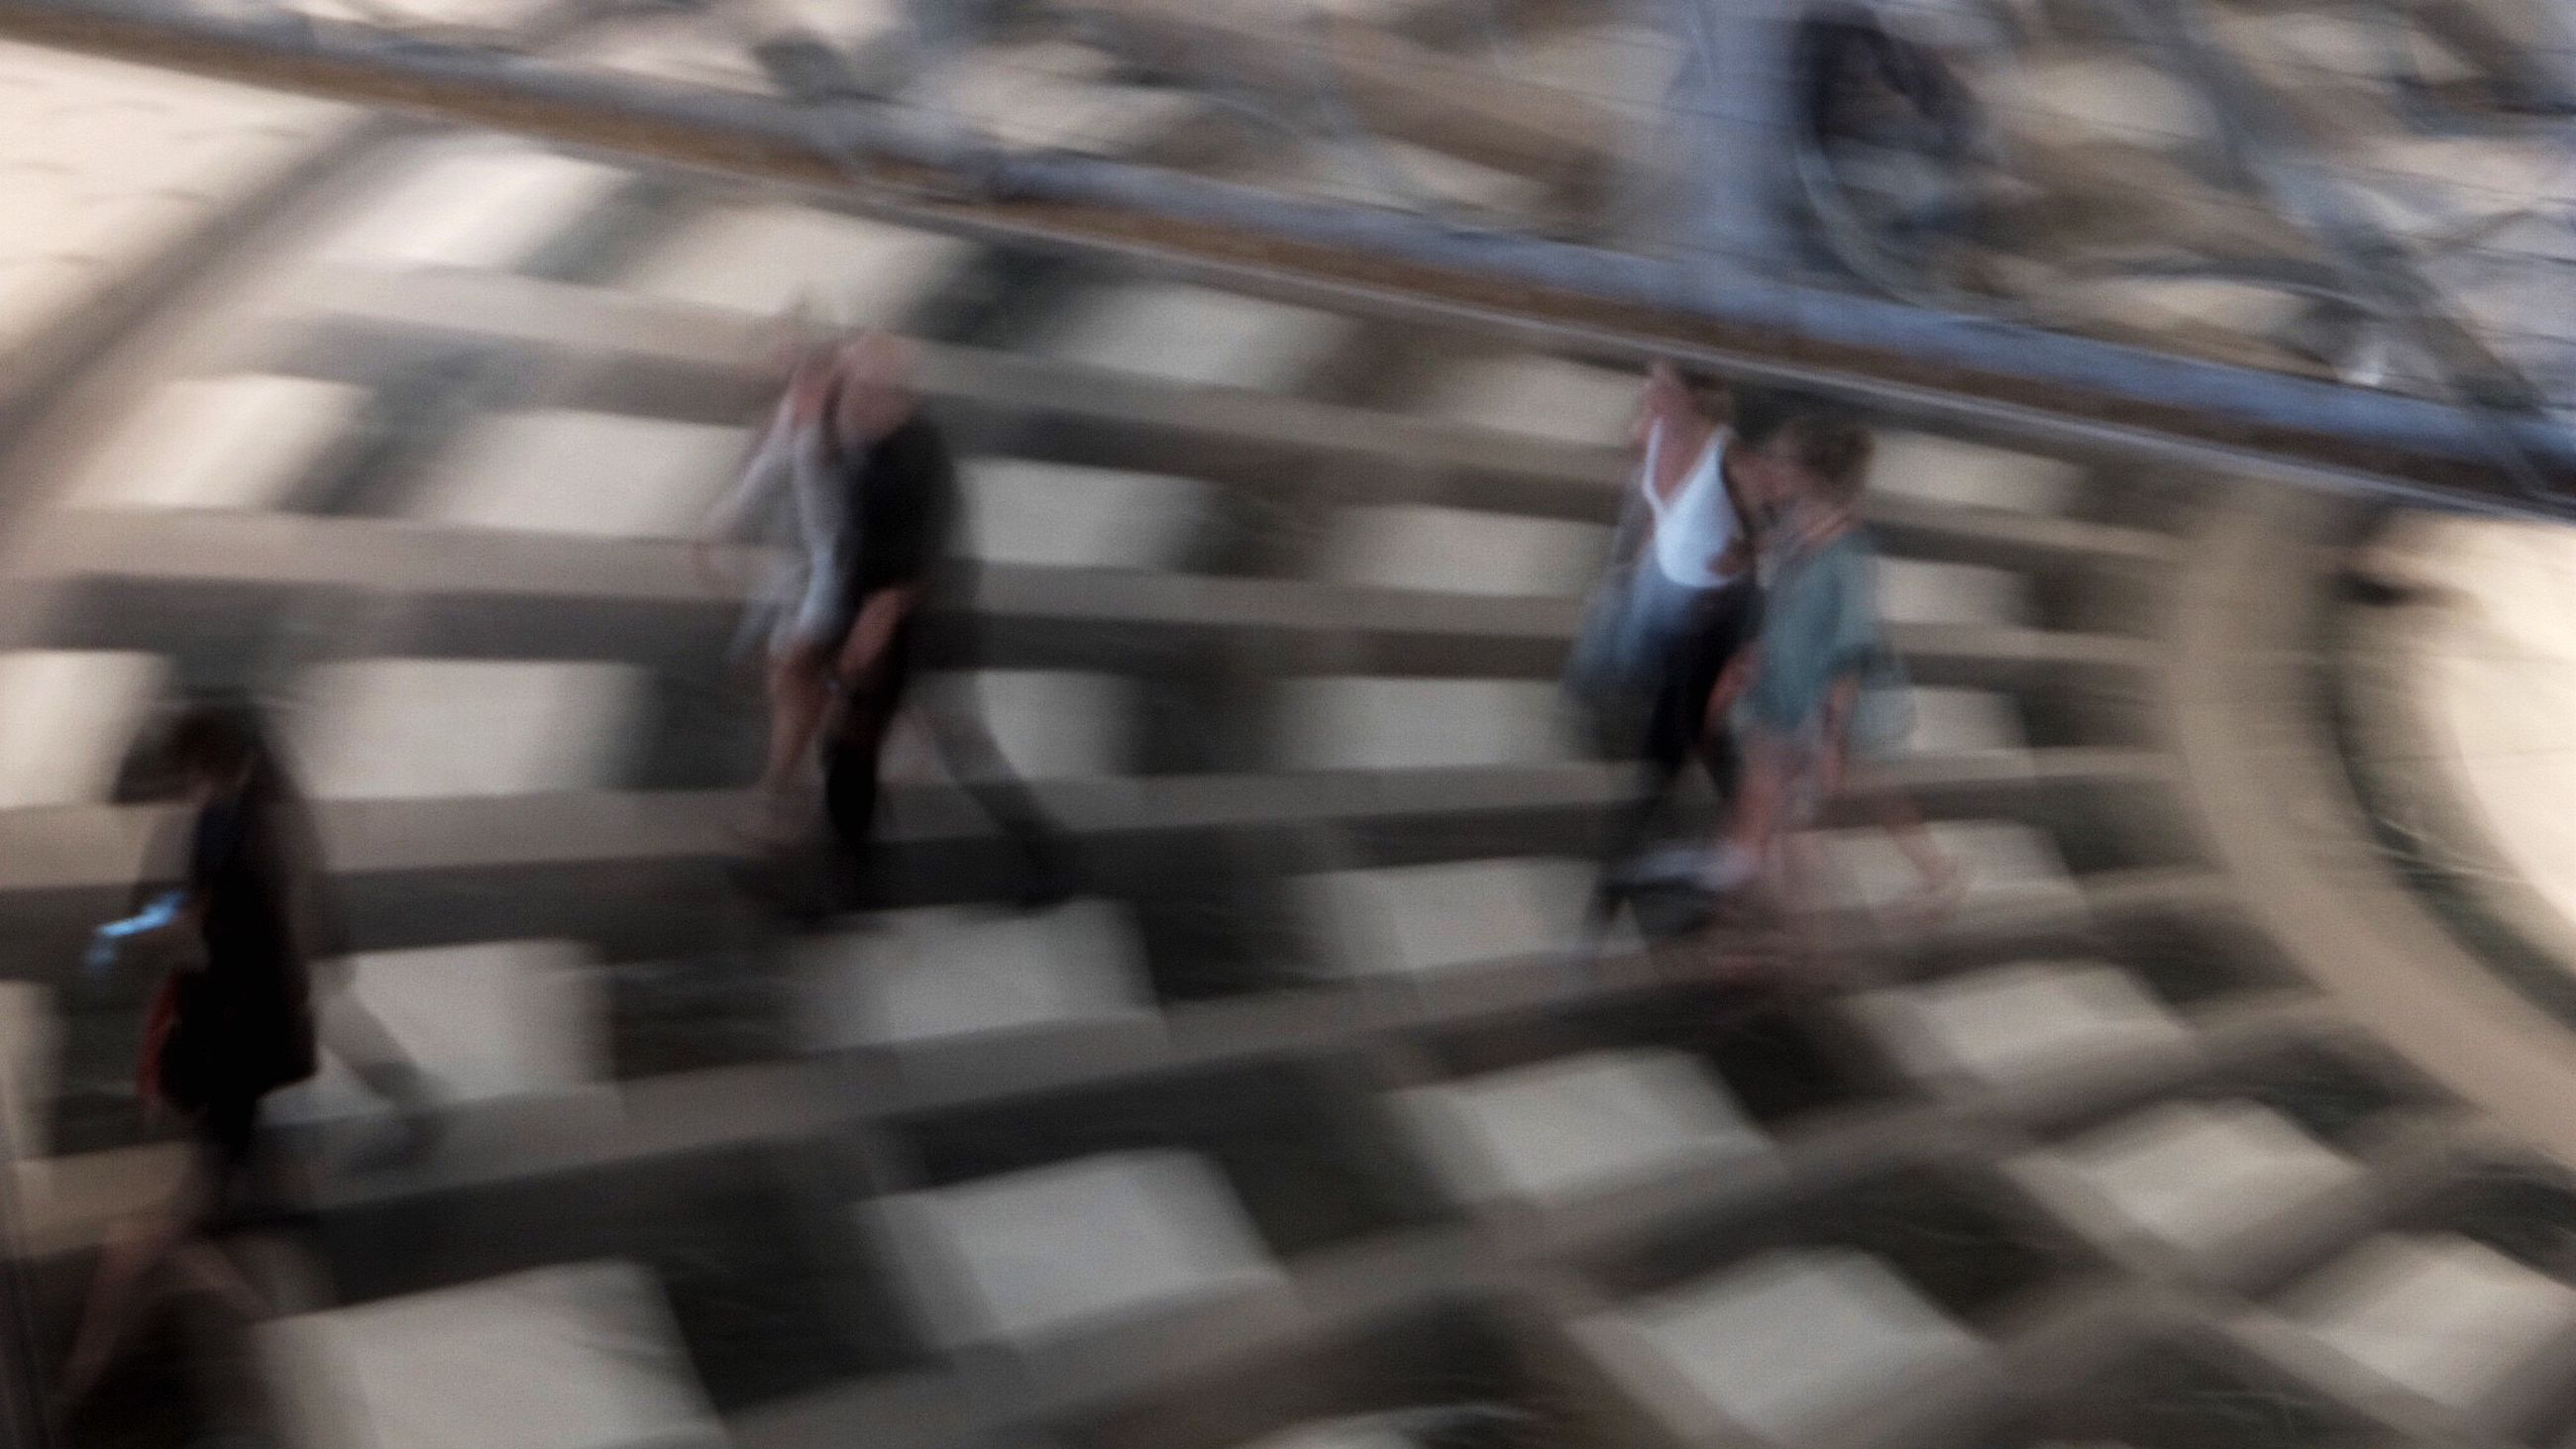 lifestyles, leisure activity, city life, day, selective focus, unrecognizable person, city, casual clothing